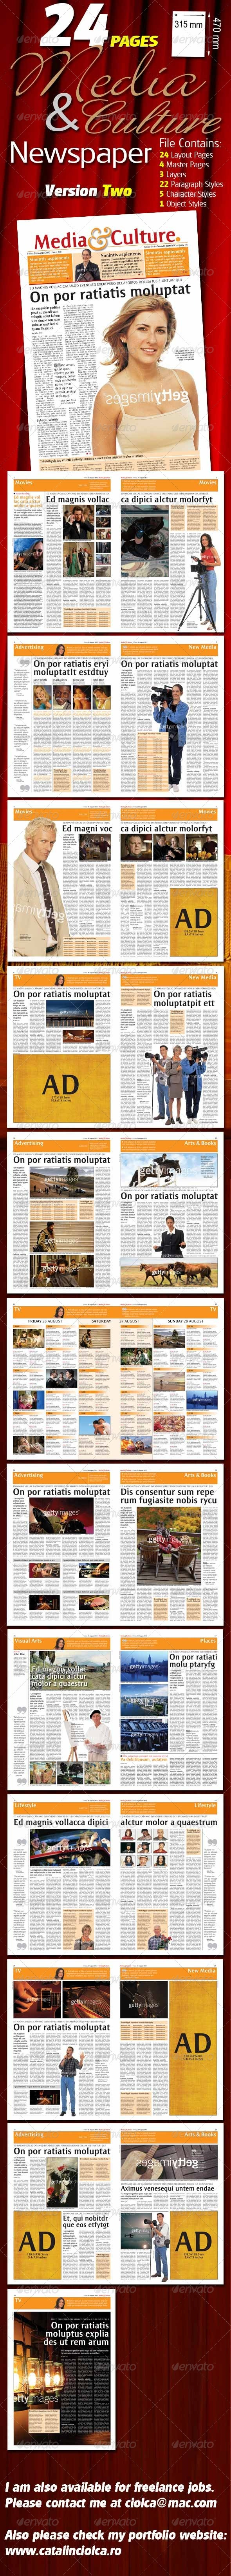 GraphicRiver 24 Pages Media & Culture Newspaper Version Two 1072360